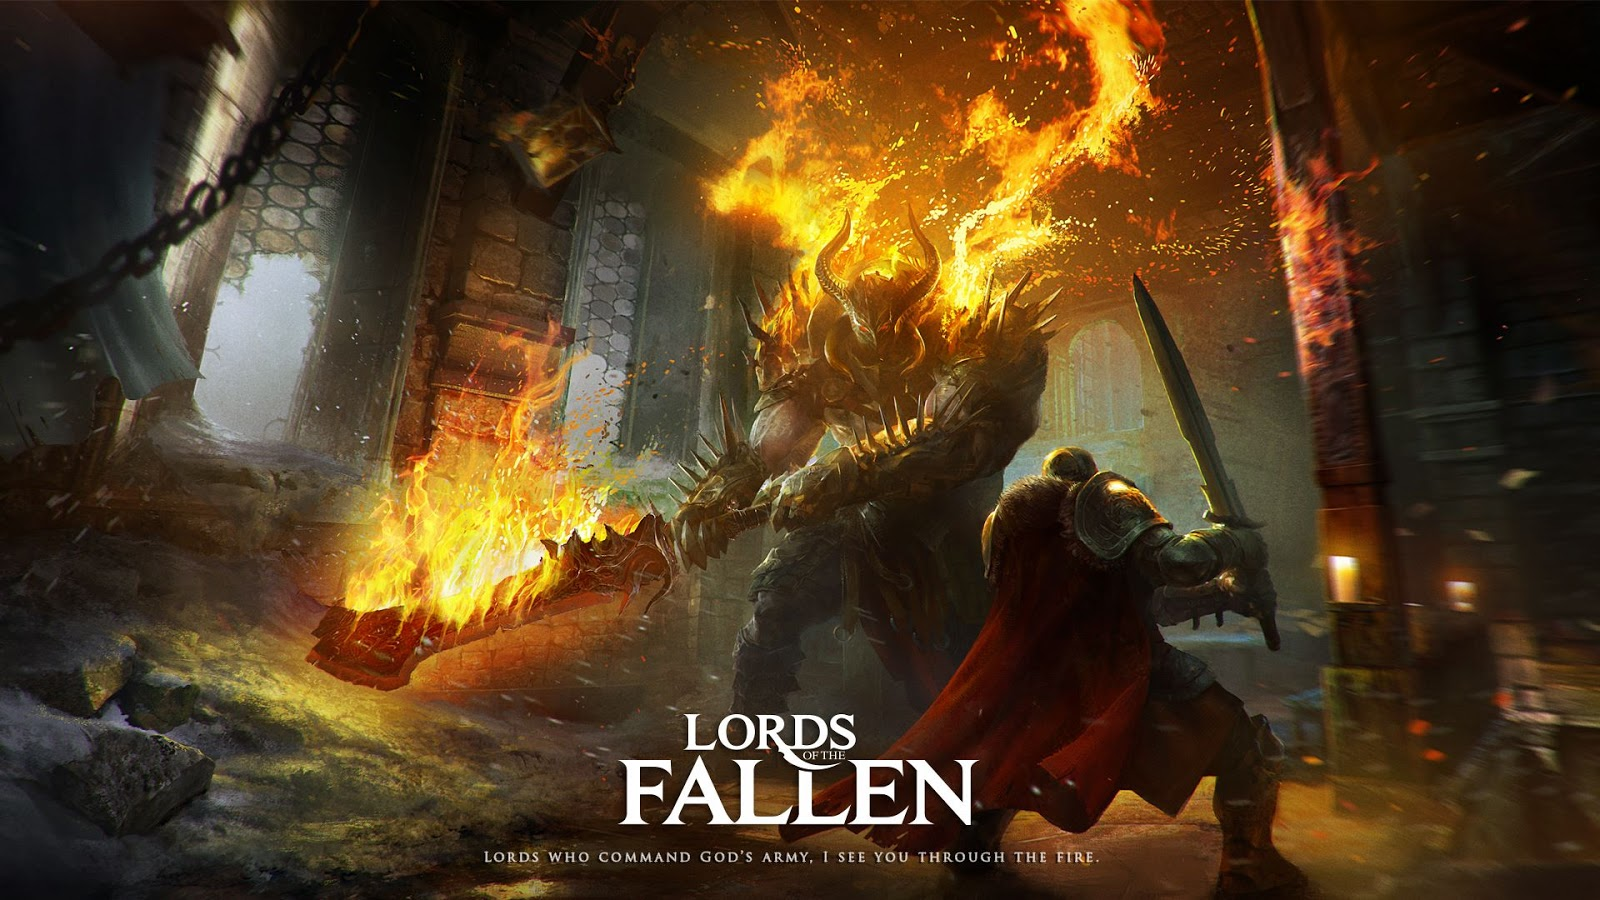 Lords Of The Fallen Game Concept Wallpaper HD  - lords of the fallen game concept wallpapers